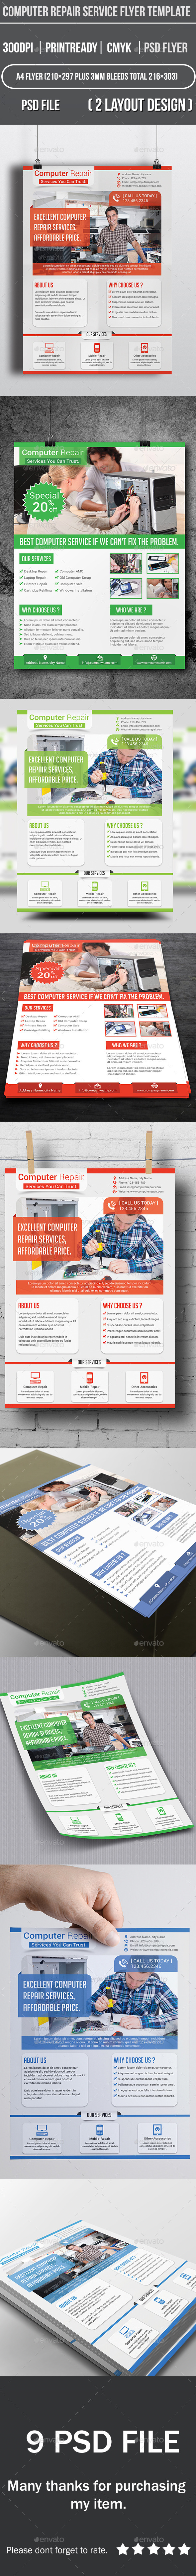 Computer Repair Service Flyer Template - Corporate Flyers